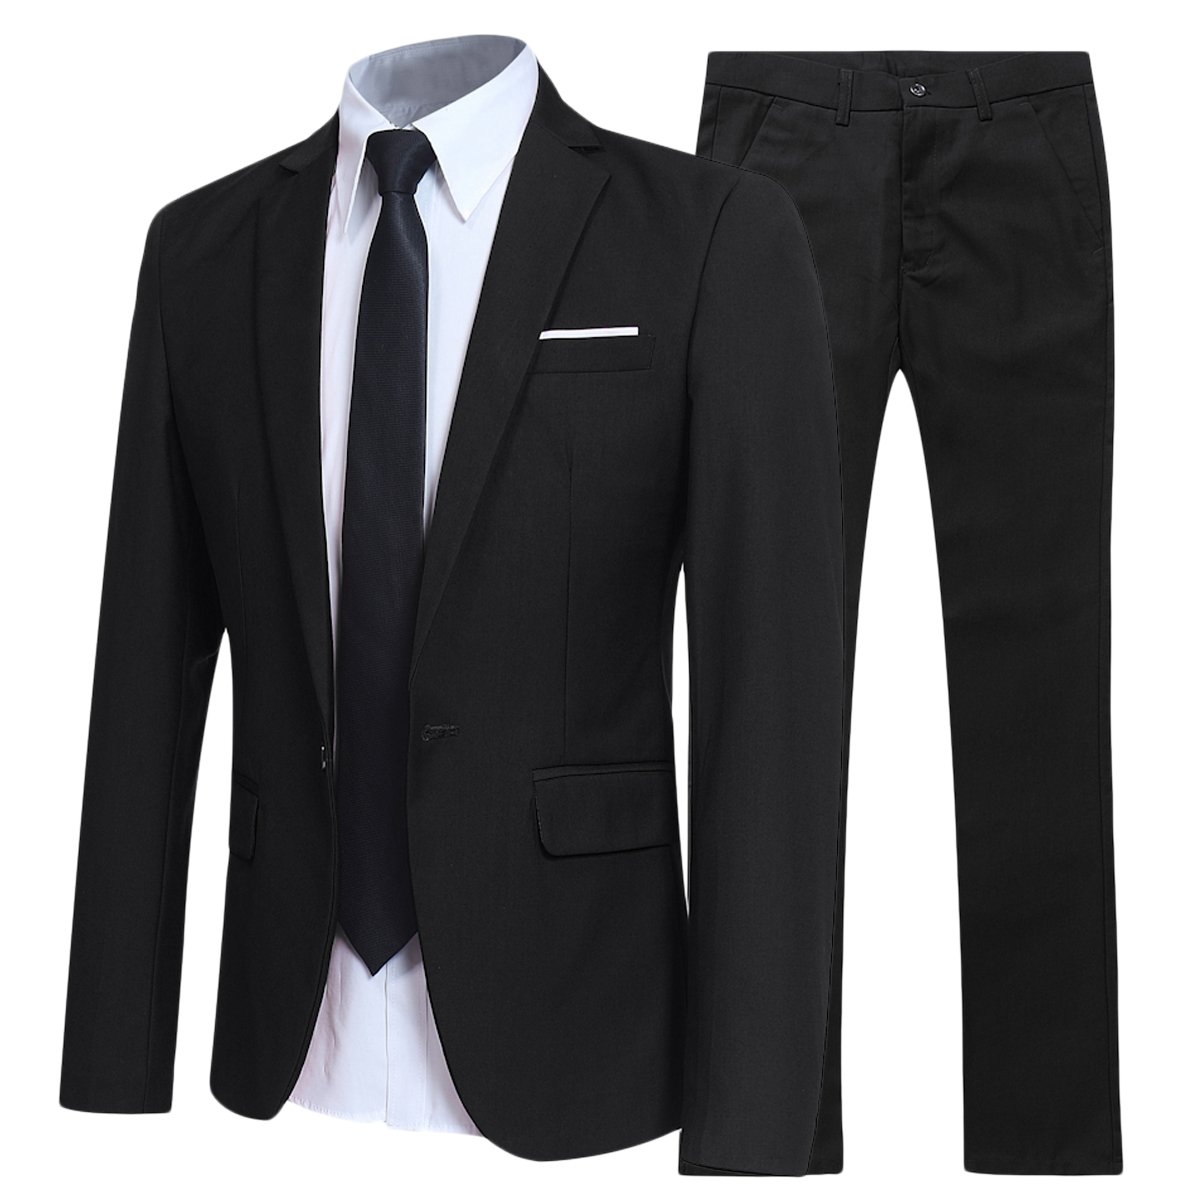 Mens Suits 2 Piece Suit Slim Fit Wedding Dinner Tuxedo Suits For Men Business Casual Jacket Trousers 10 Colors Available Buy Online In Haiti At Haiti Desertcart Com Productid 63936248